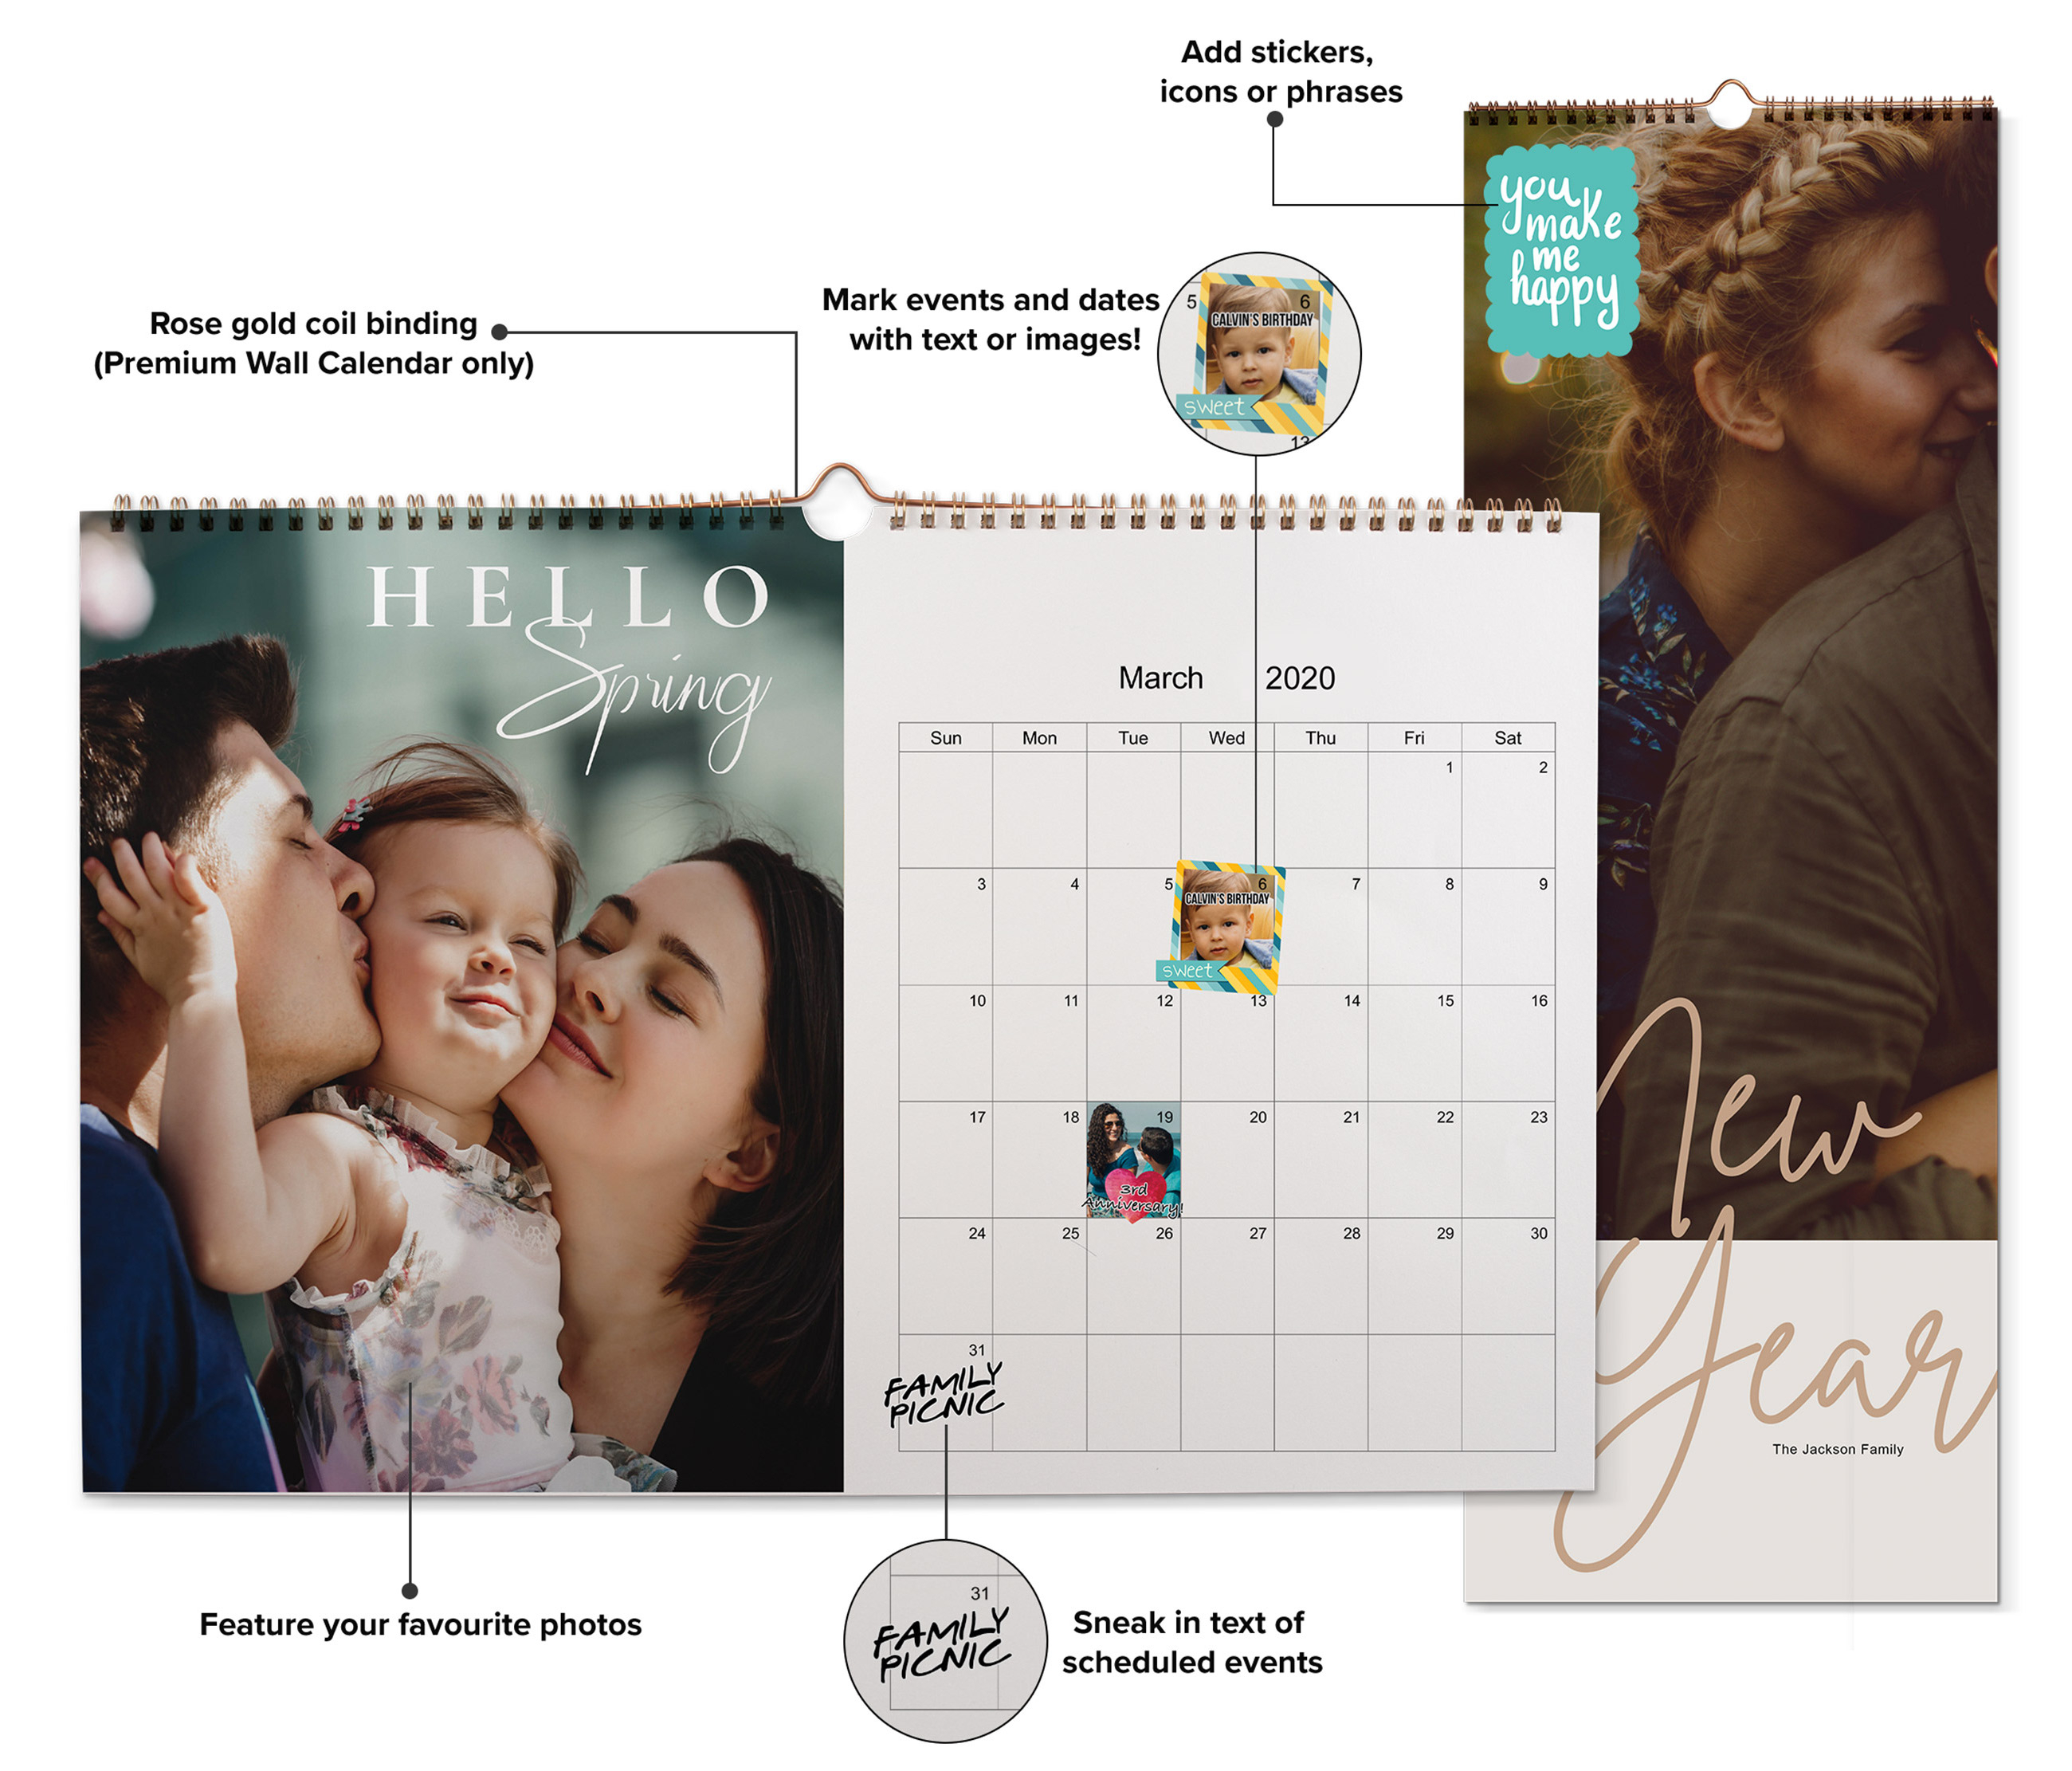 Custom Photo Calendars Philippines | Make Your Own @40% Off with regard to Personalized Calendar Maker Philippines